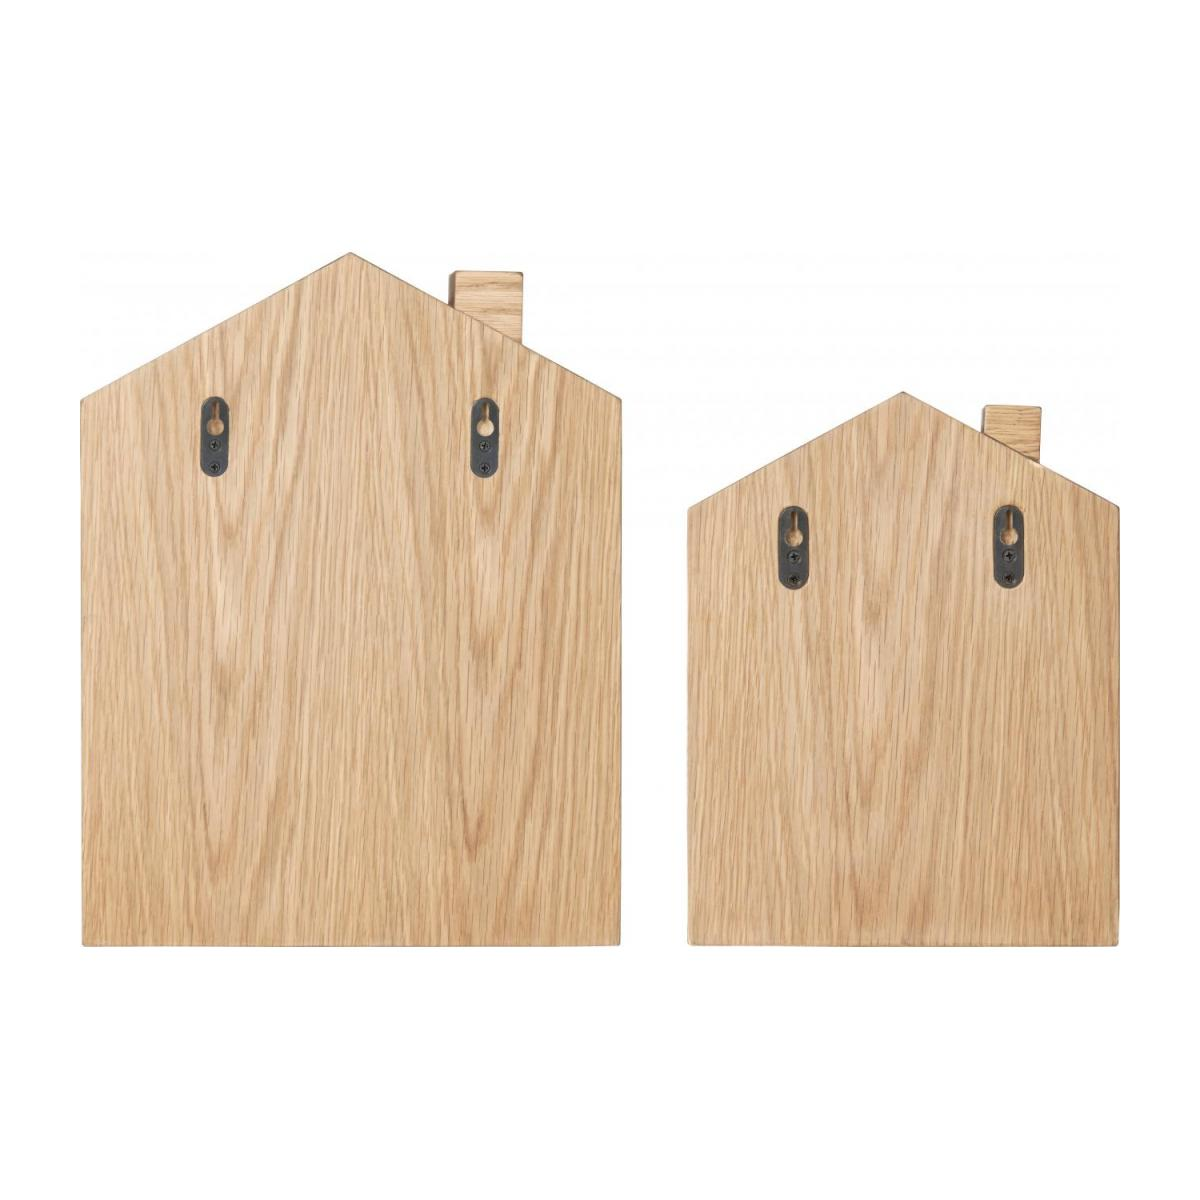 Set of 2 shelves made of oak, natural, grey-blue and yellow n°7